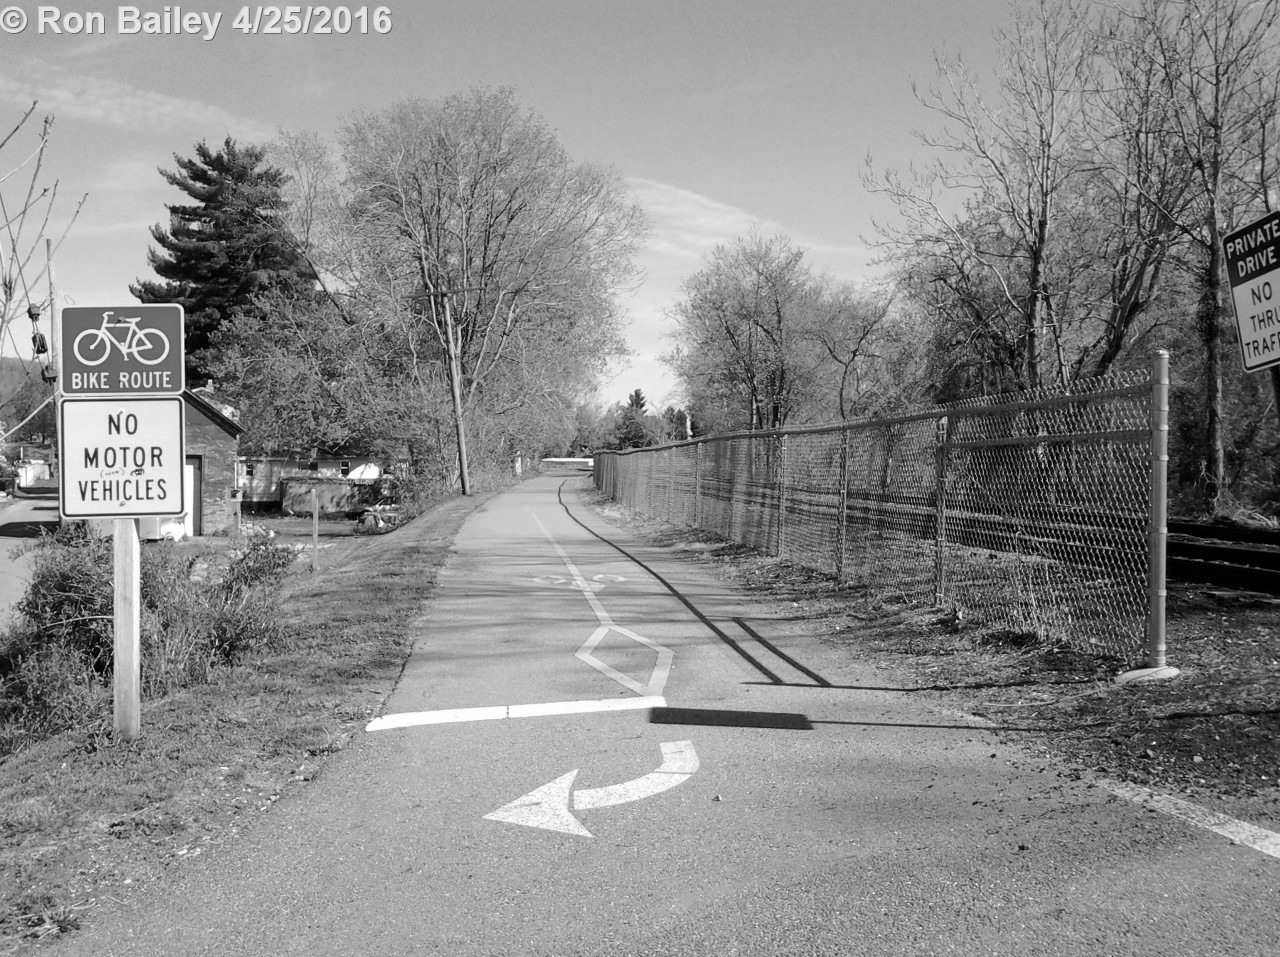 The trailhead for the bike path BW